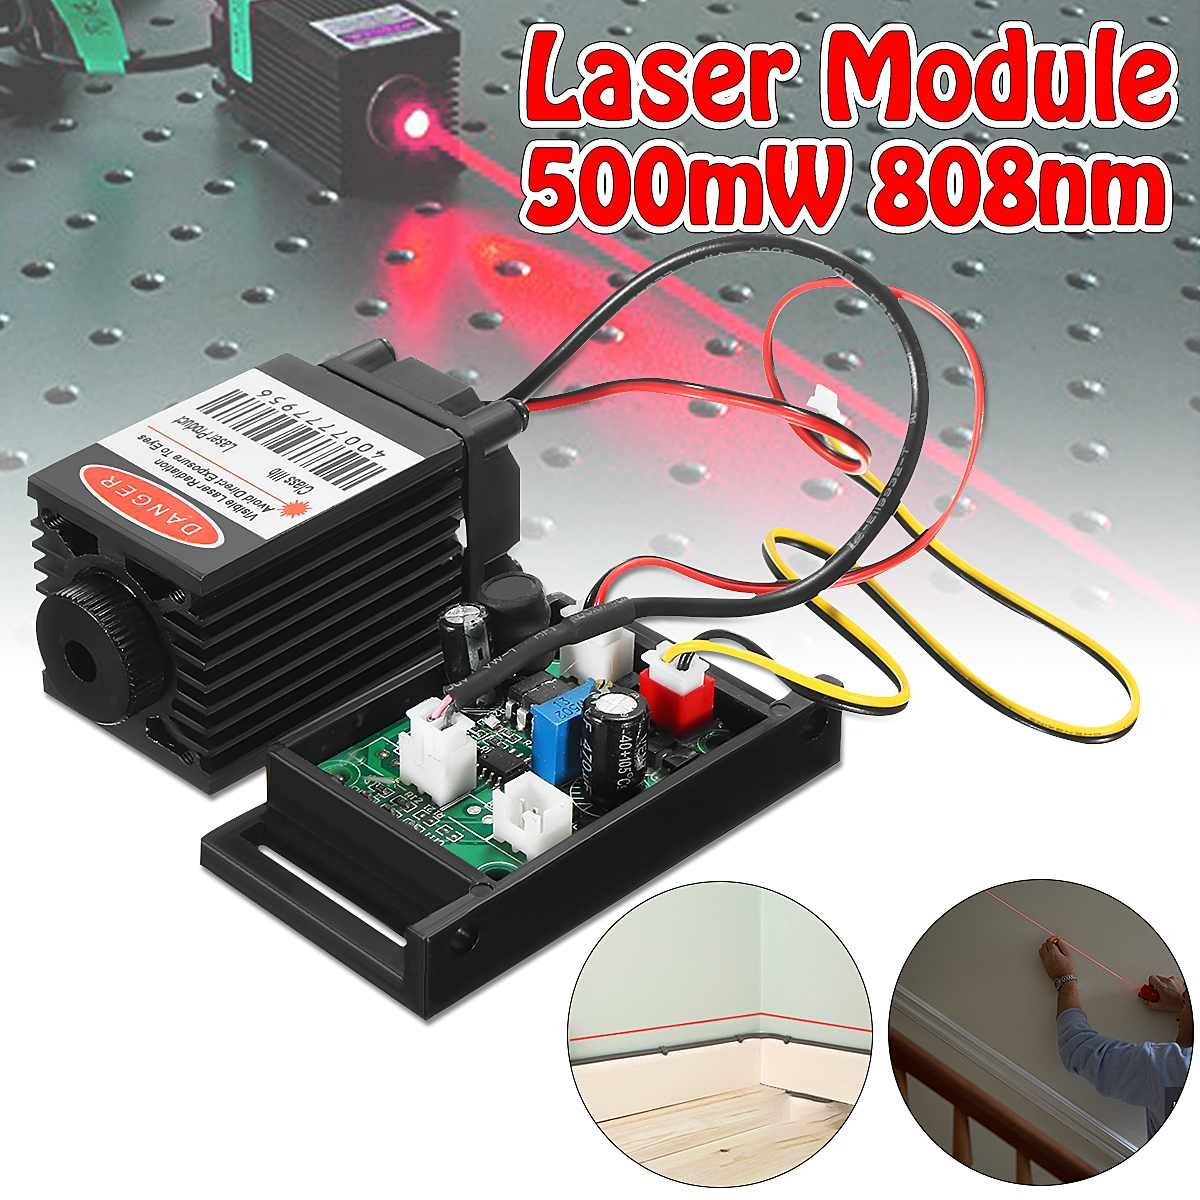 Focusable 500mw 808nm Infrared IR Laser Module Diode Dot Module 12V+ TTL+ Fan Cooling Laser Module For CNC Engraving Machine